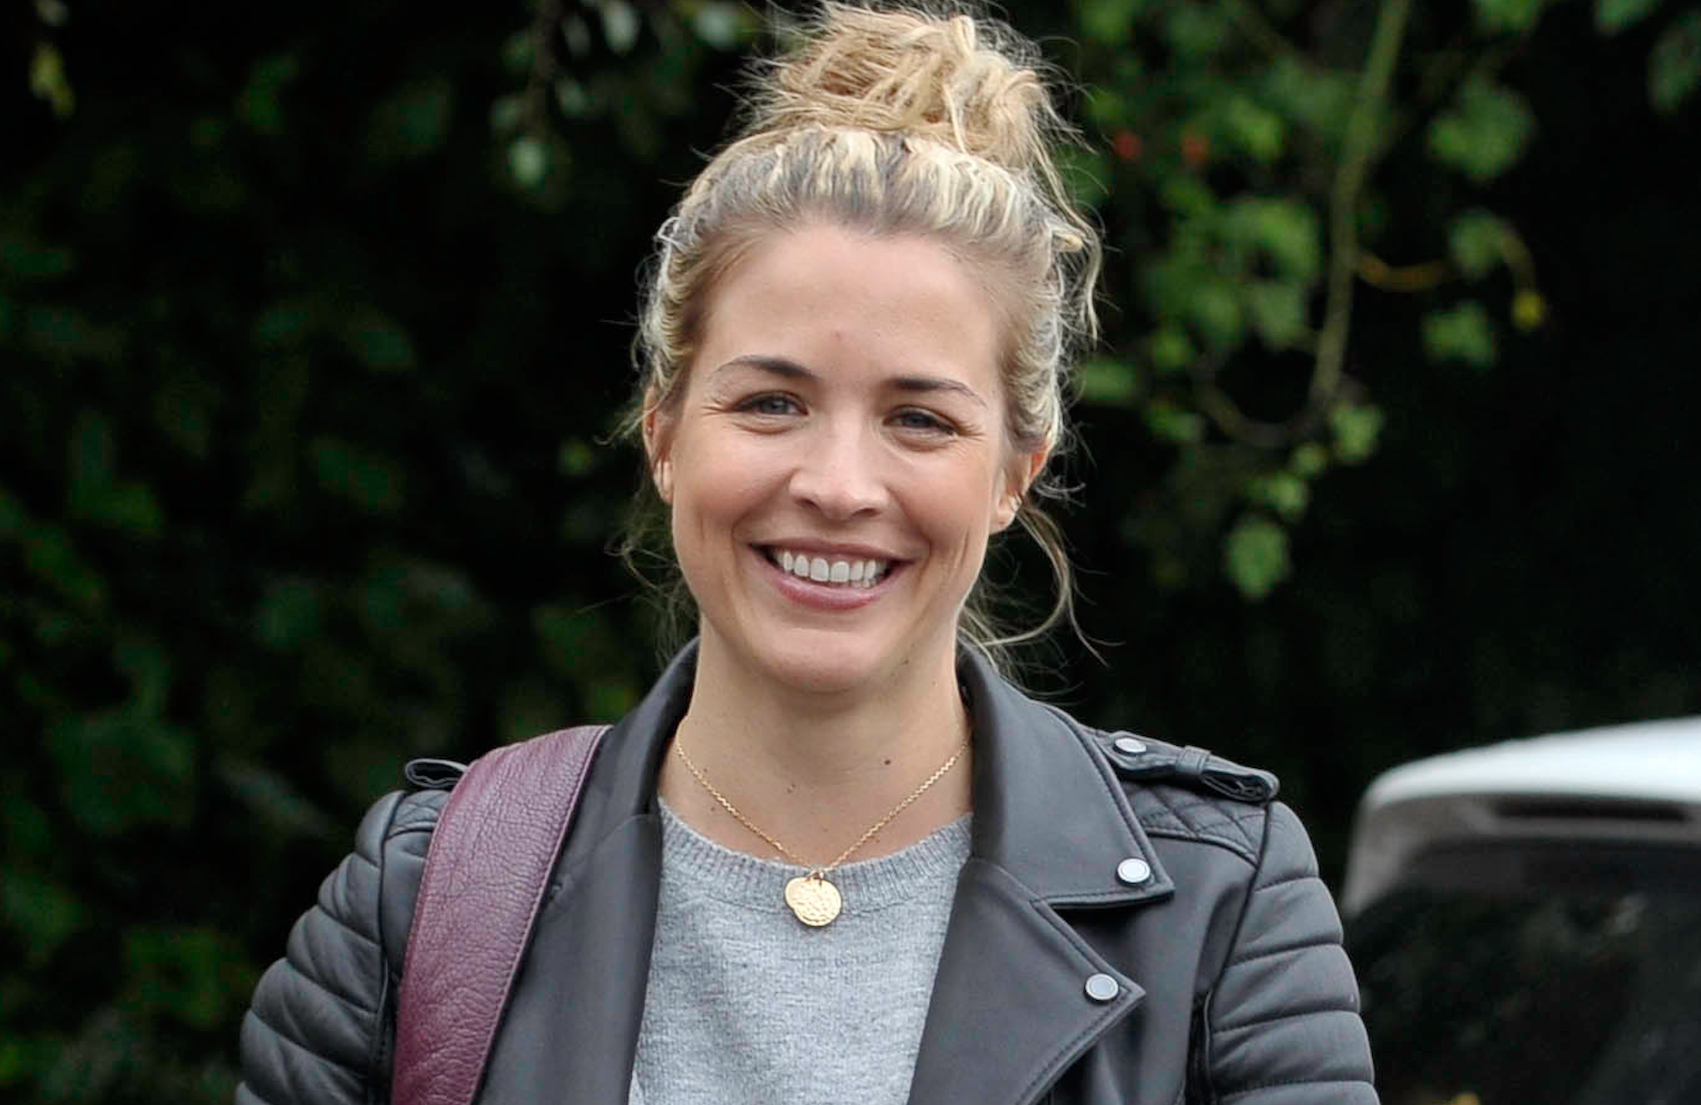 Gemma Atkinson hits back after she's accused of 'Photoshopping C-section scar'